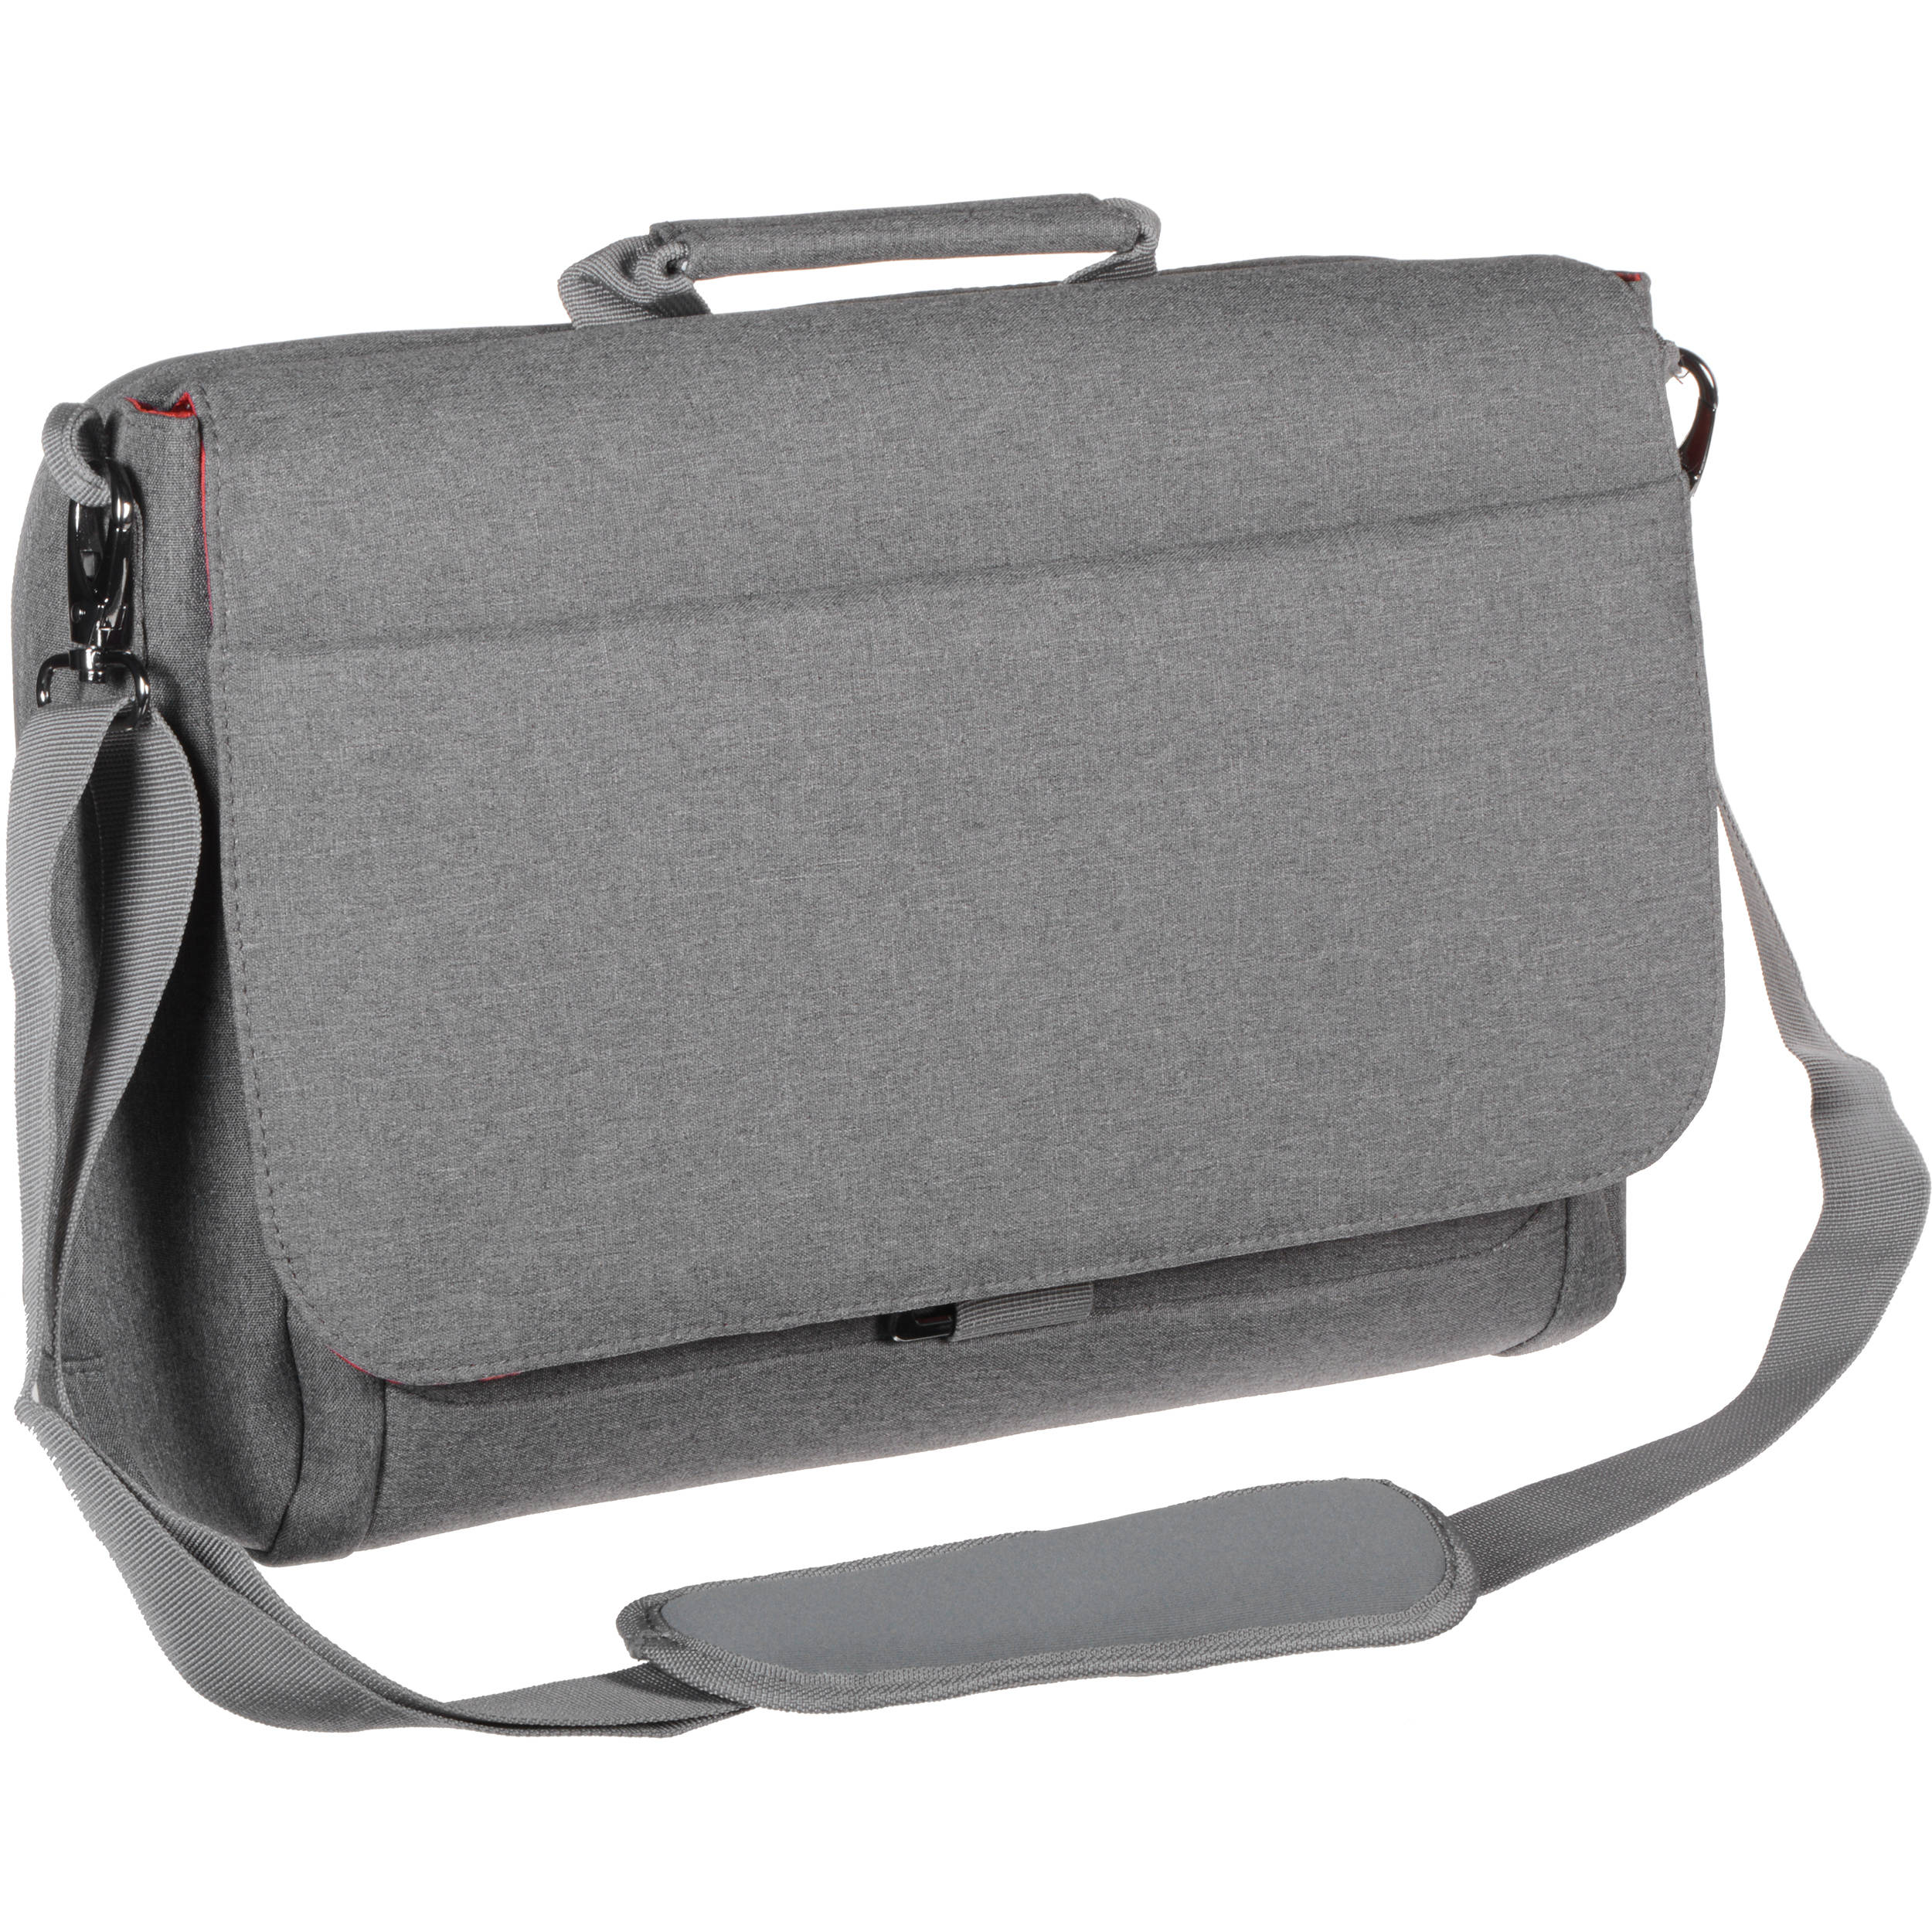 Kensington LM340 Messenger Bag for 14.4